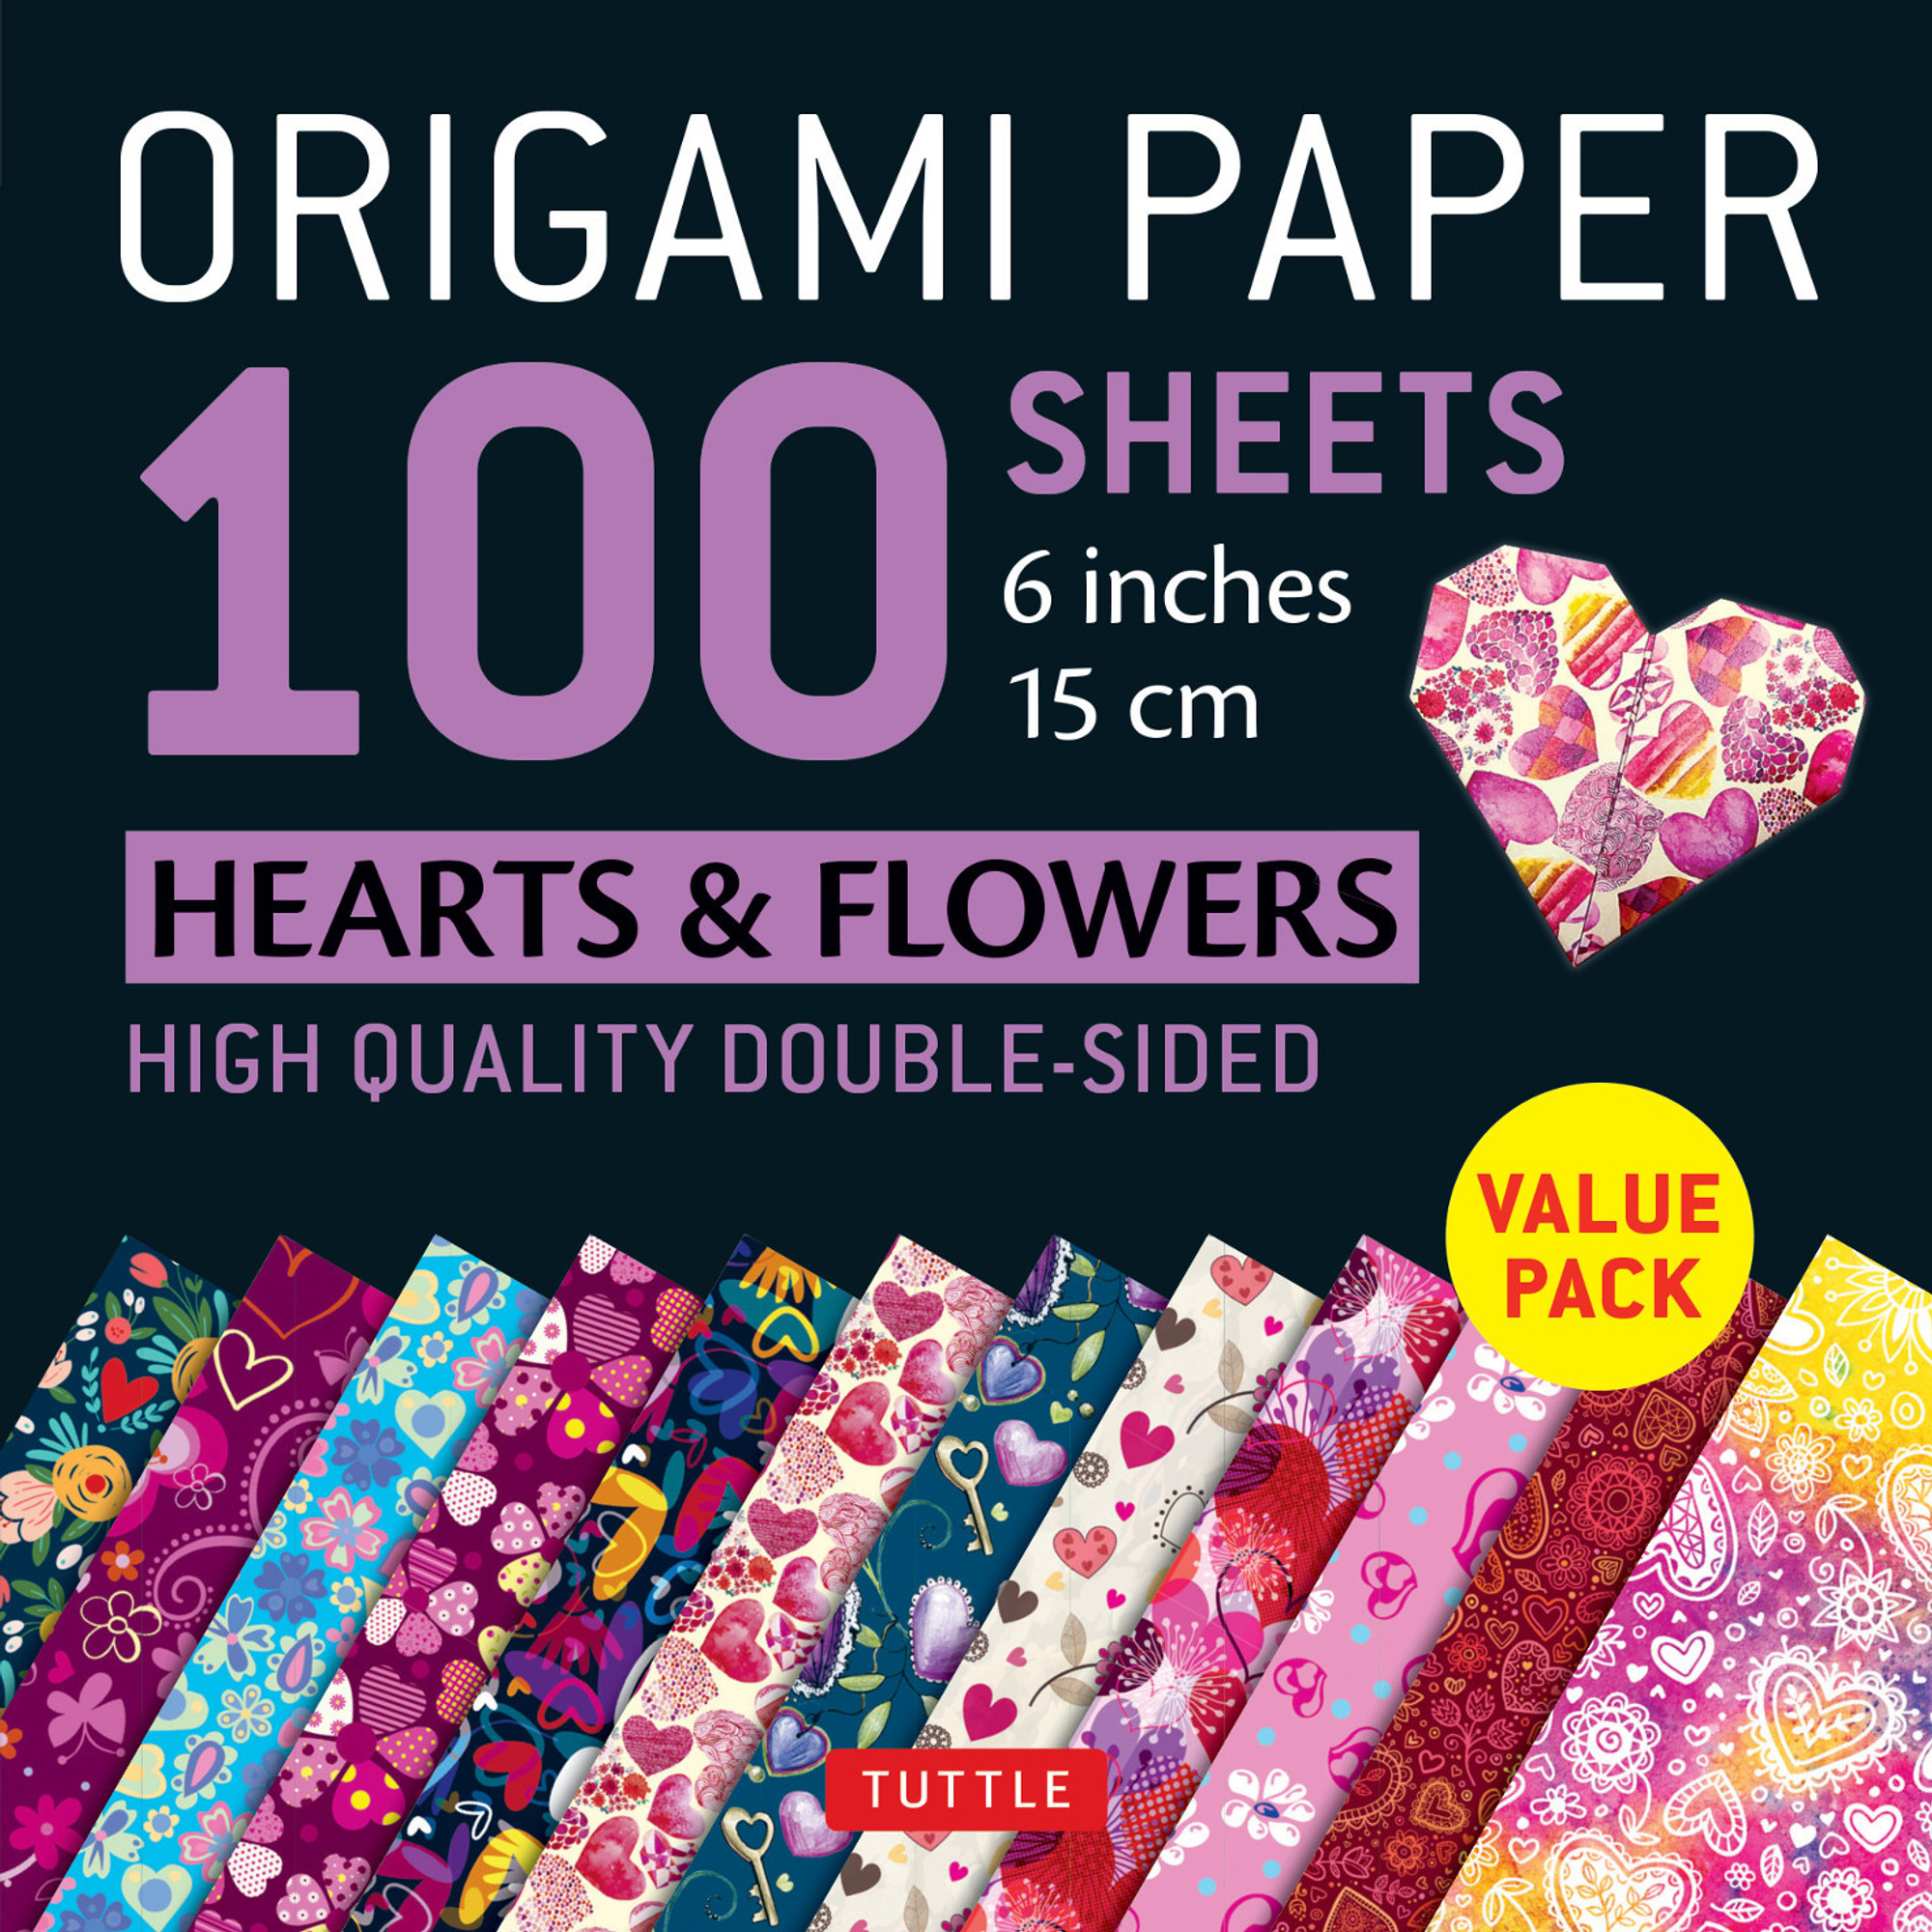 Flowers Rose Kids Arts and DIY Crafts Origami Paper Decoration Handcrafts Paper Airplanes Hearts 150 Sheets 15x15cm // 6 inch Square Paper for Fold Crane